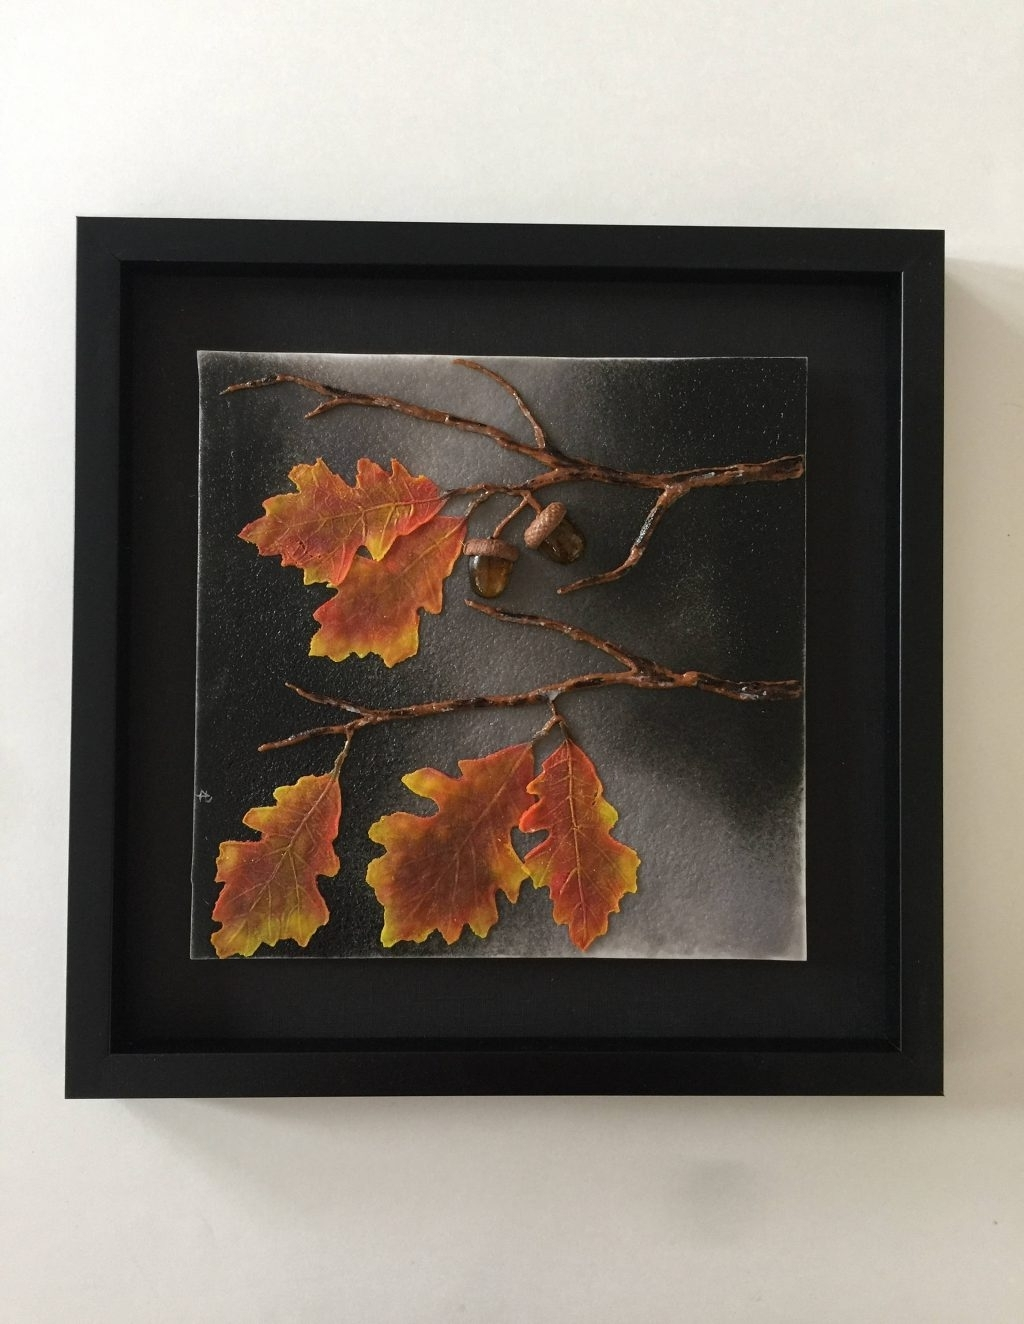 Fused Glass Wall Art Manchester With Regard To Well Known Cool Design Fused Glass Wall Art Together With Handmade Oak Tree (View 7 of 15)